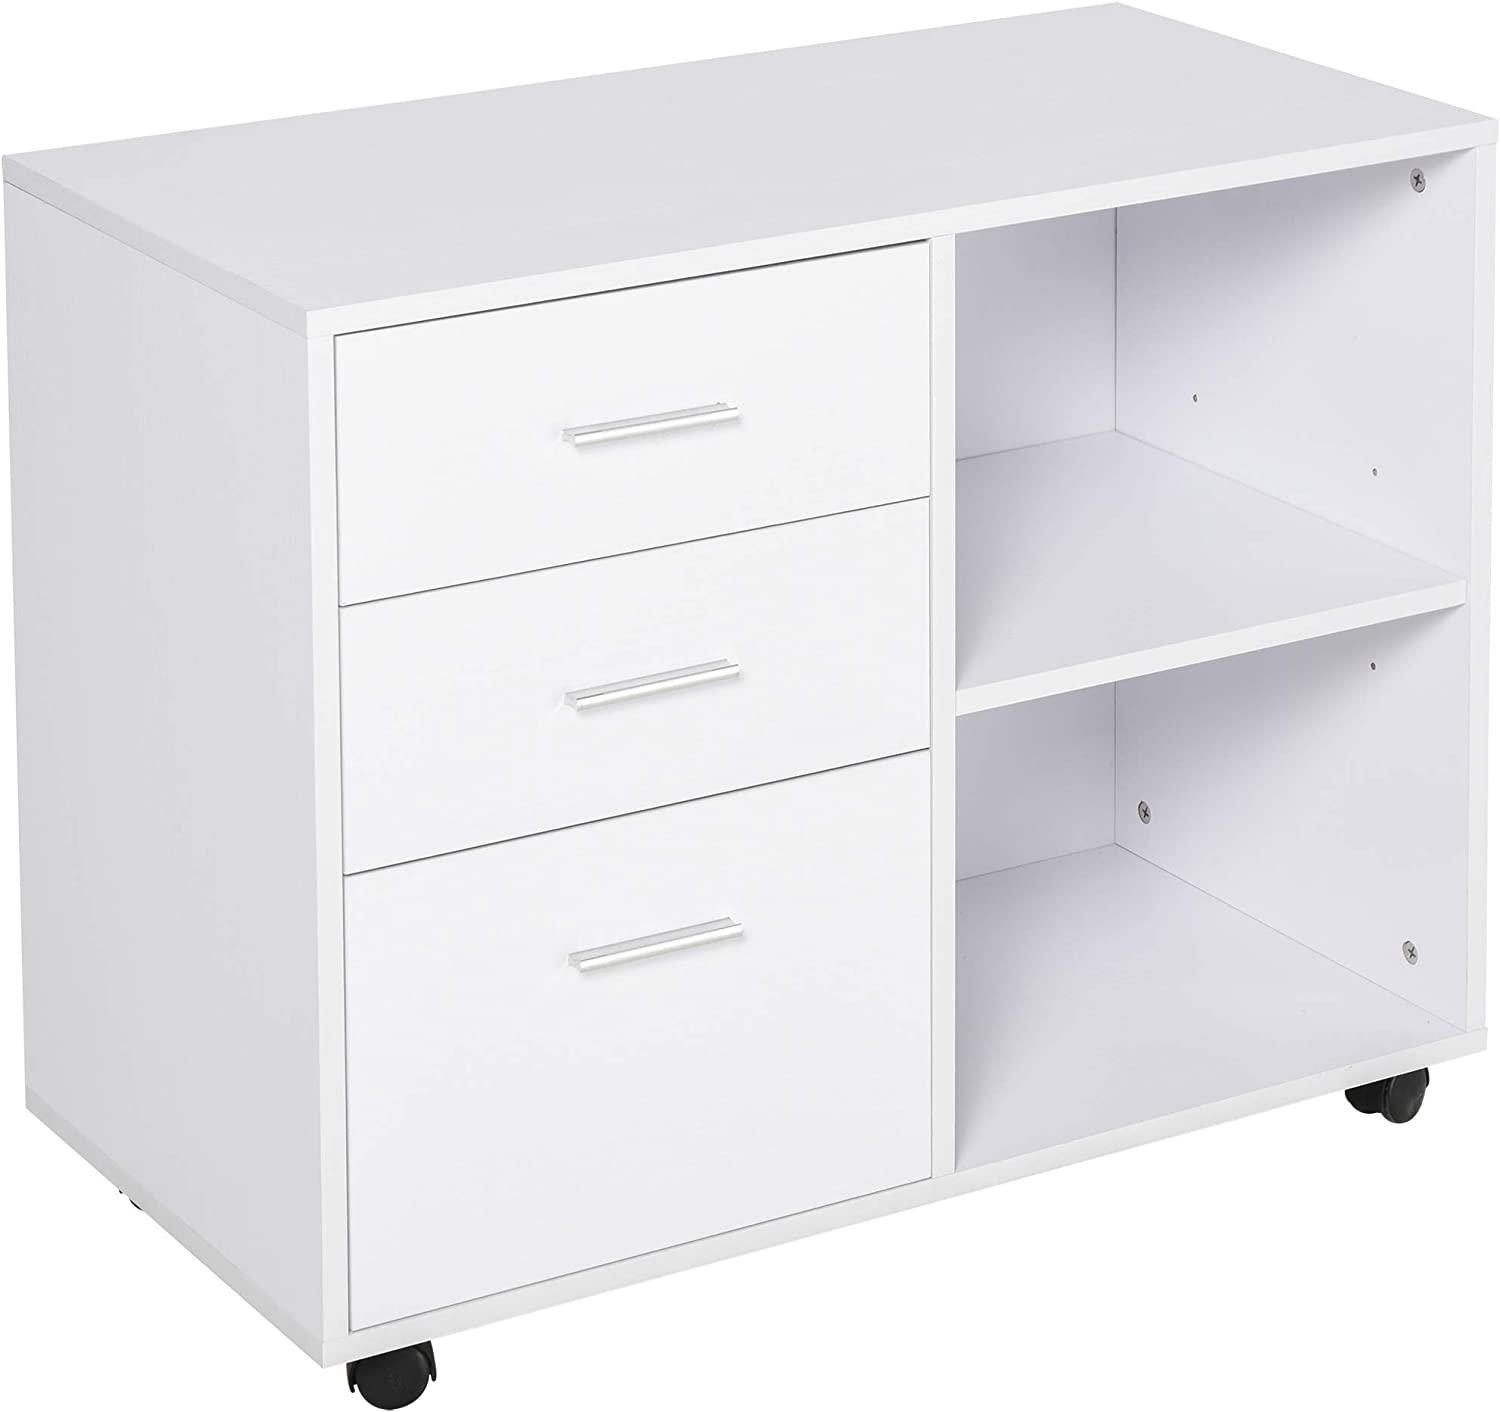 HOMCOM Indoor Office Filing Cabinet with 3 Storage Drawers, Open Shelving, 4 Caster Wheels for Easy Rolling, White